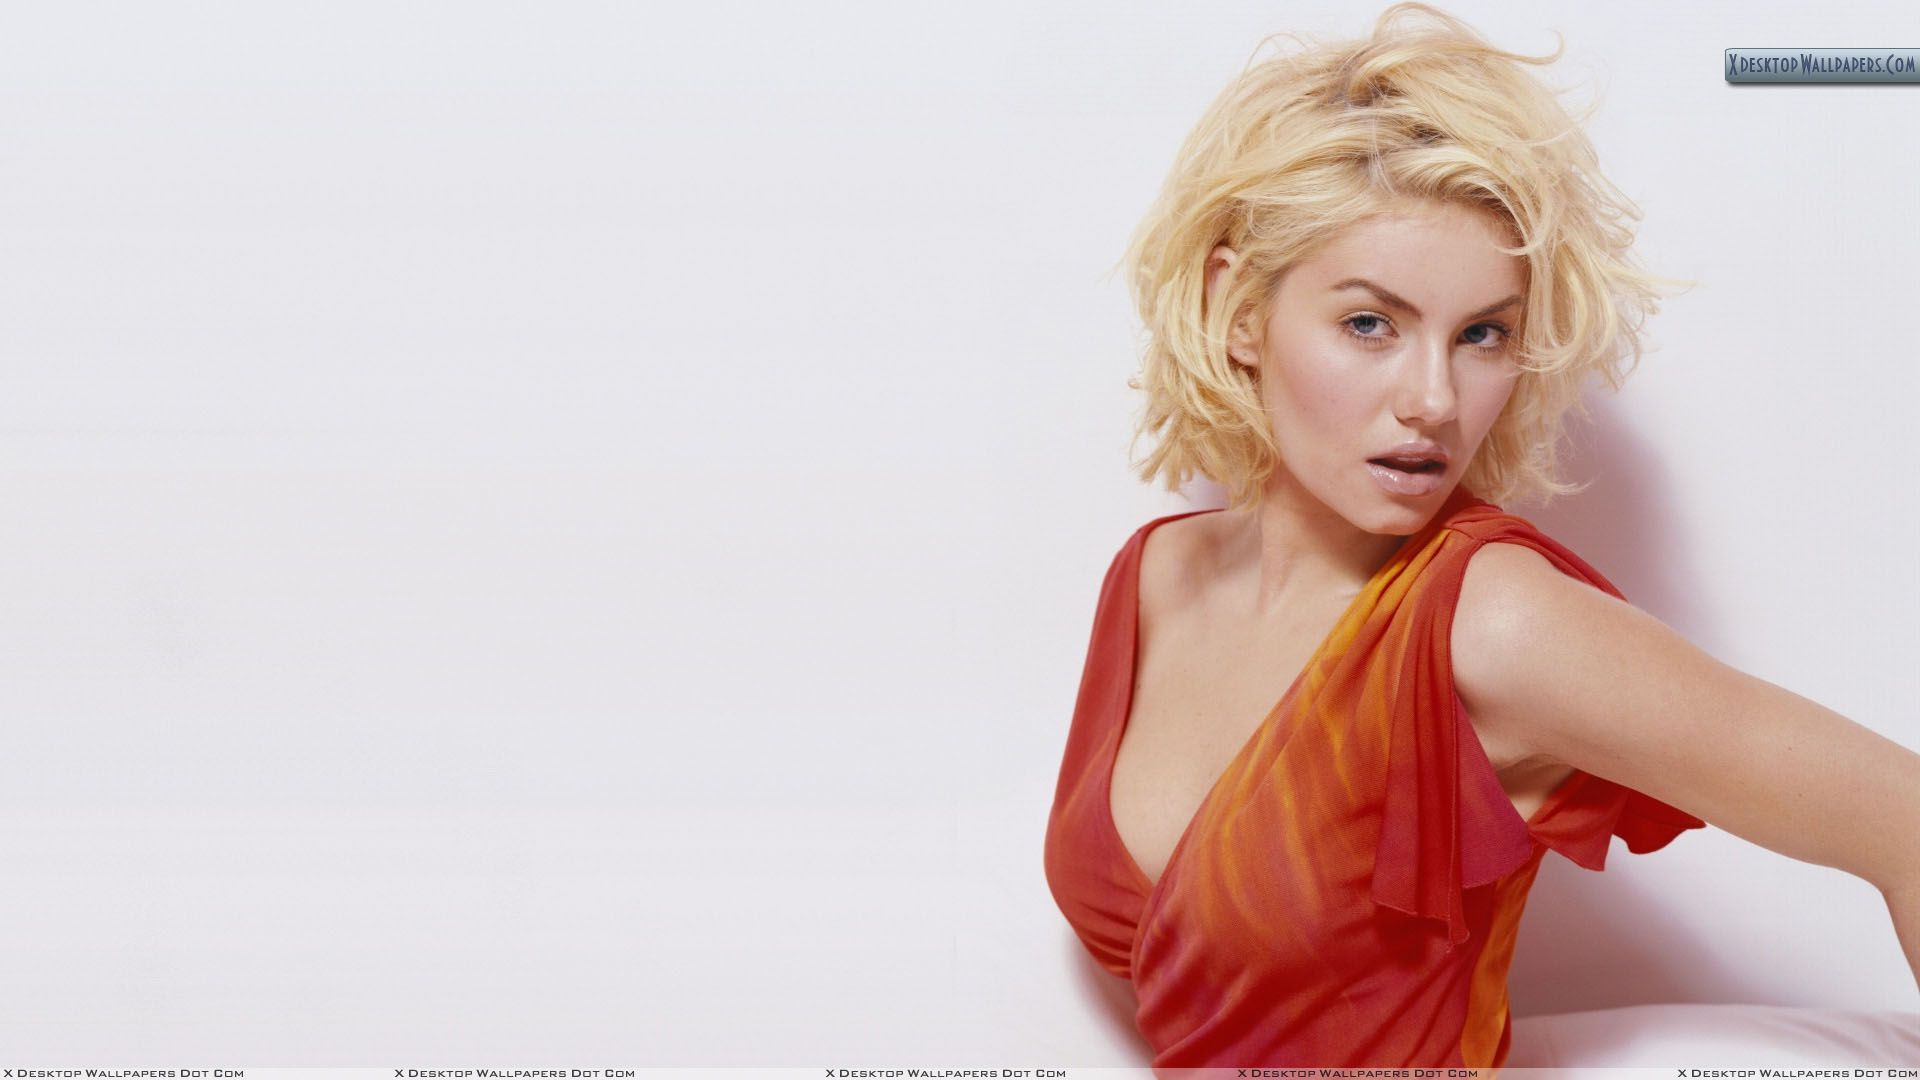 Elisha Cuthbert Hd Wallpapers: Elisha Cuthbert Smiling HD Desktop Wallpaper High